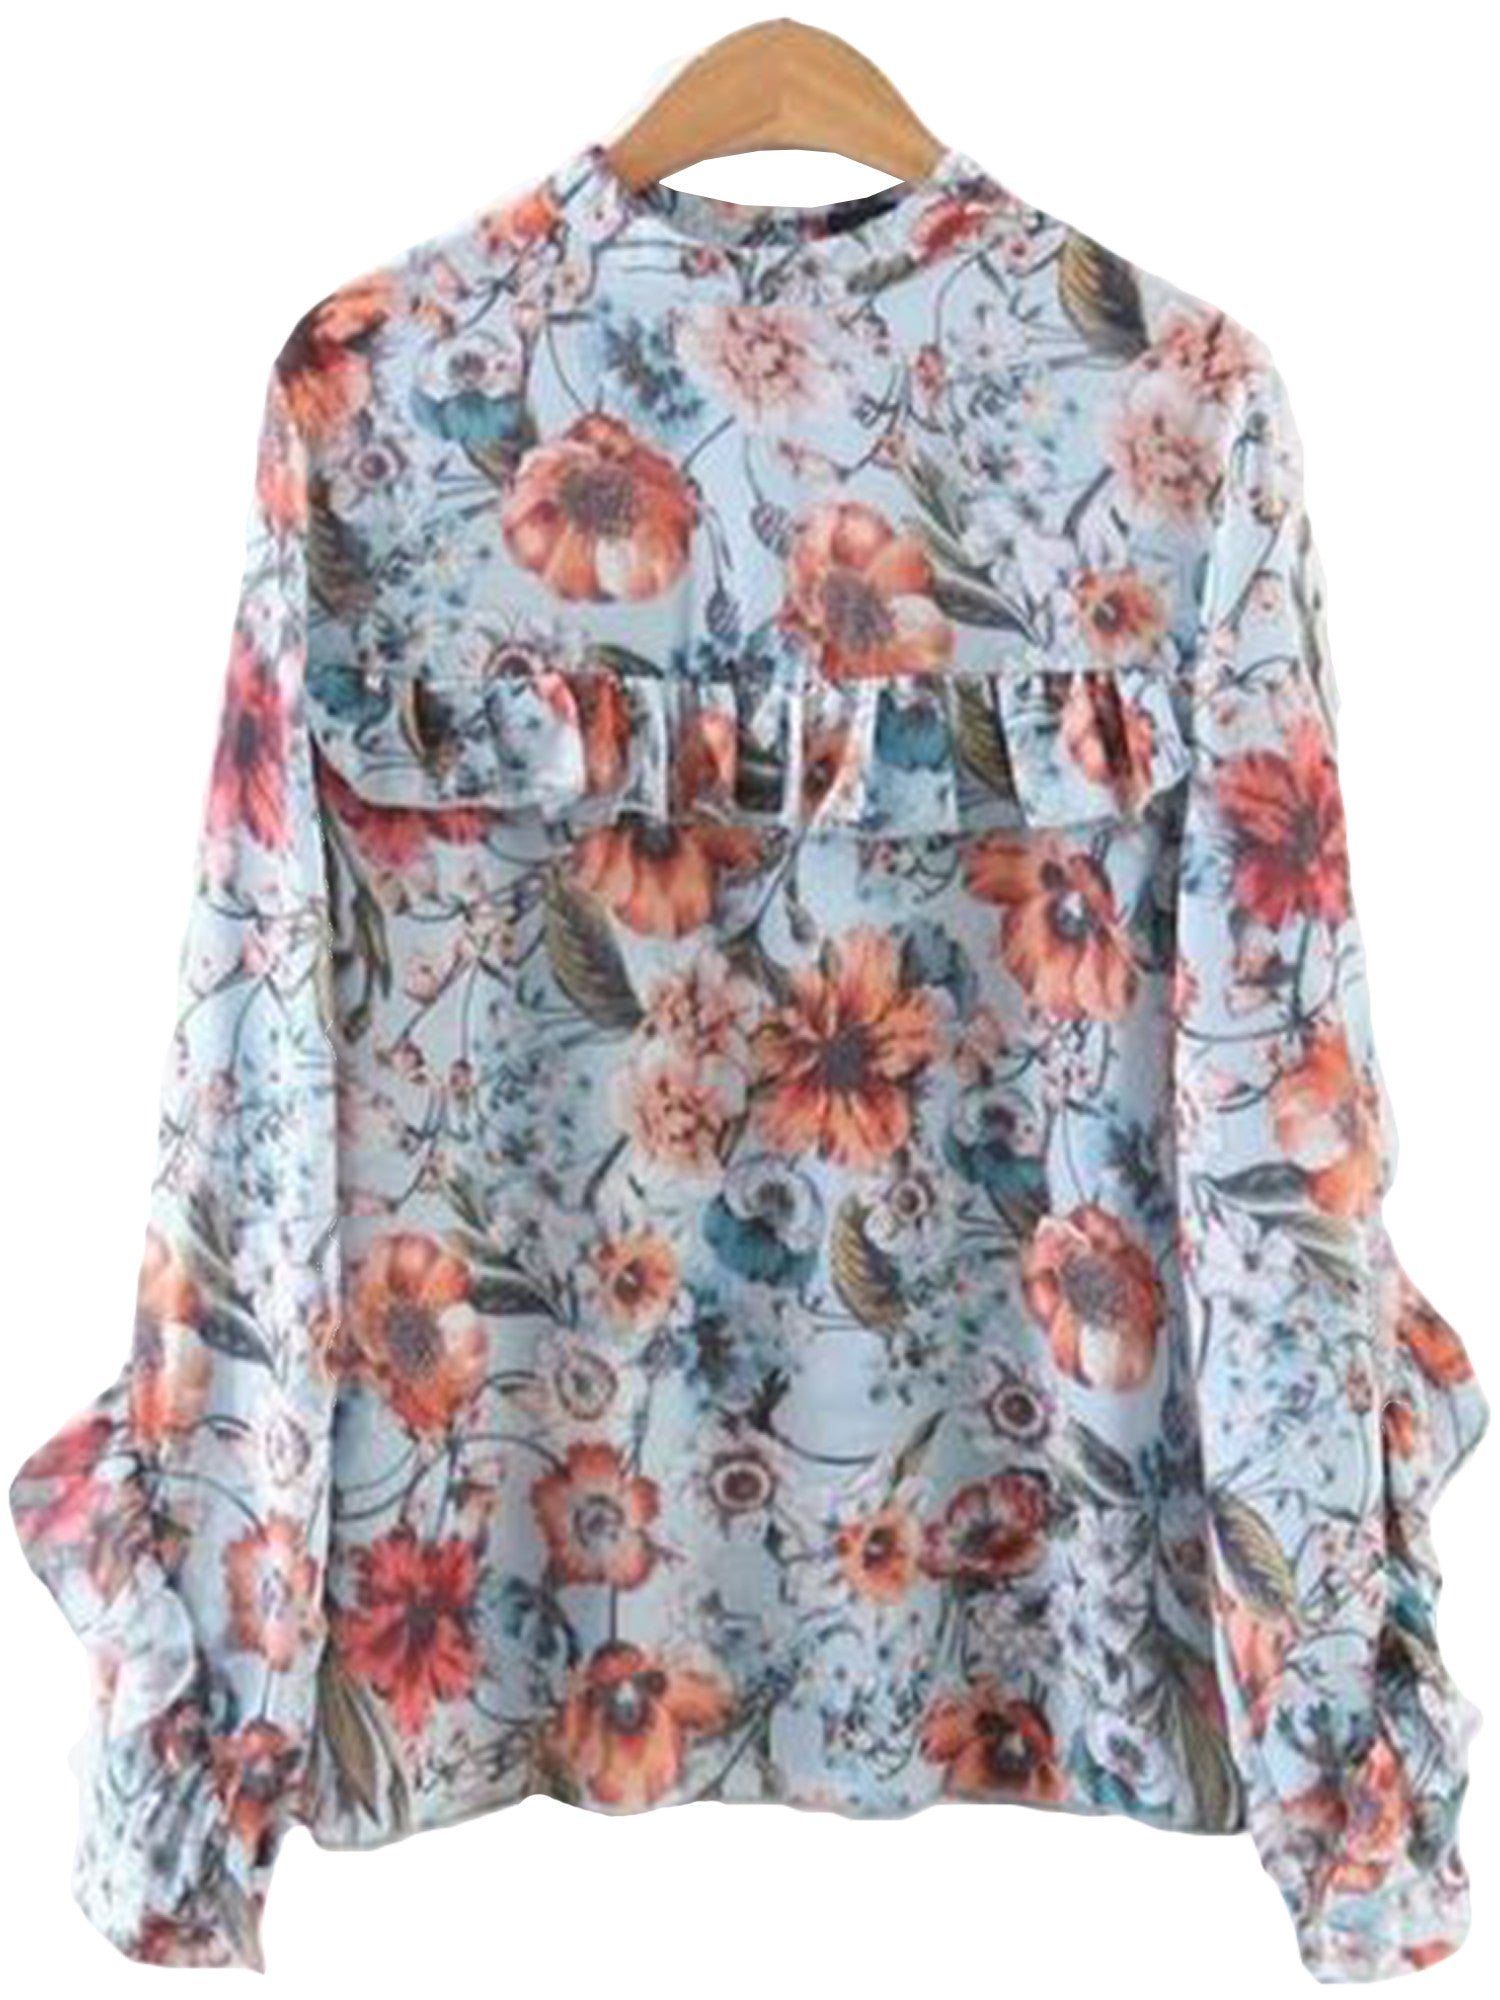 'Sally' Floral Frilly Blouse